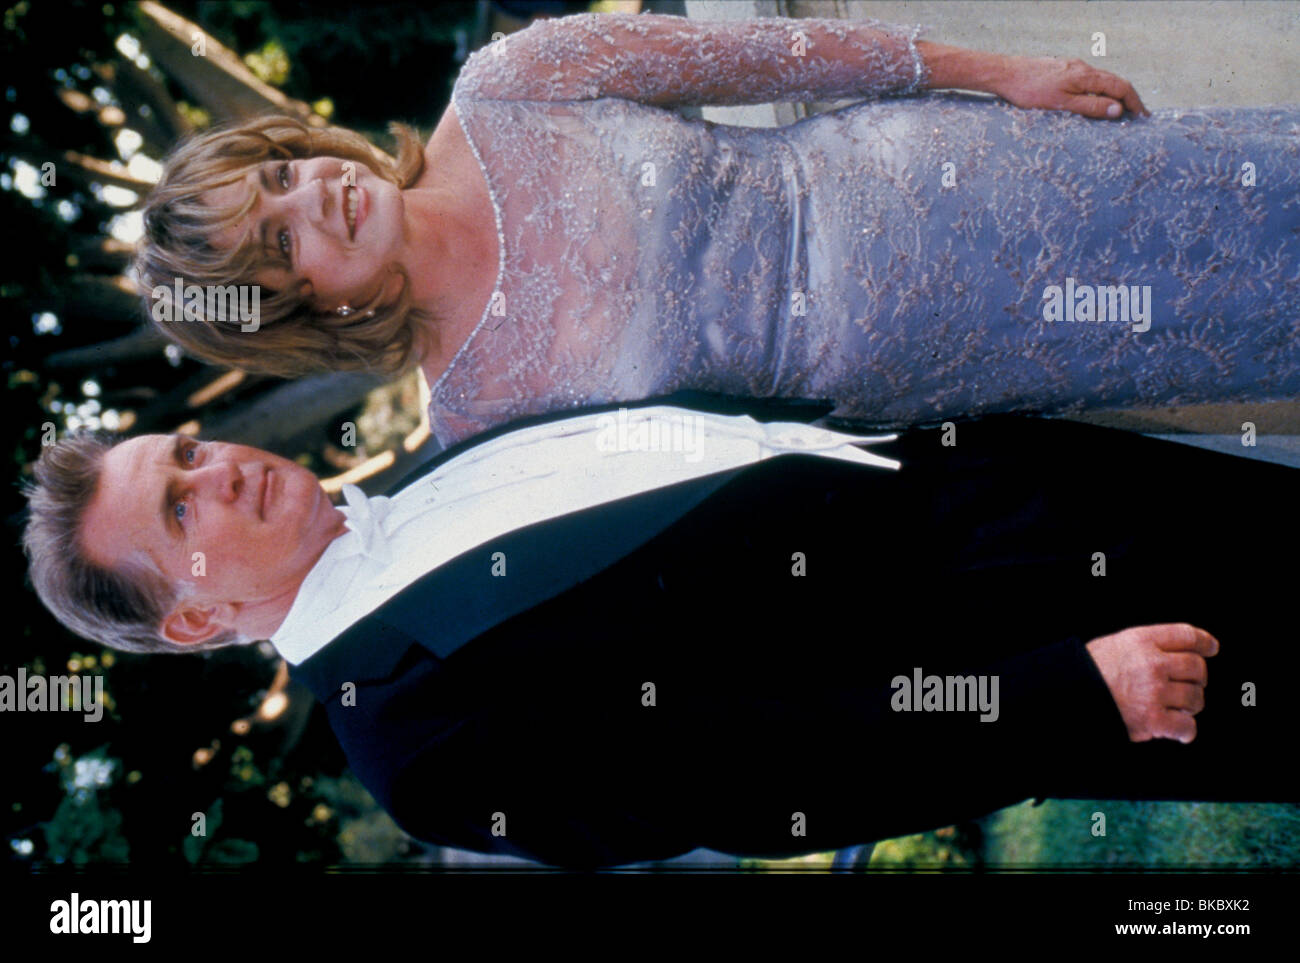 THE WEST WING (TV) MARTIN SHEEN, STOCKARD CHANNING WEWI 004 - Stock Image